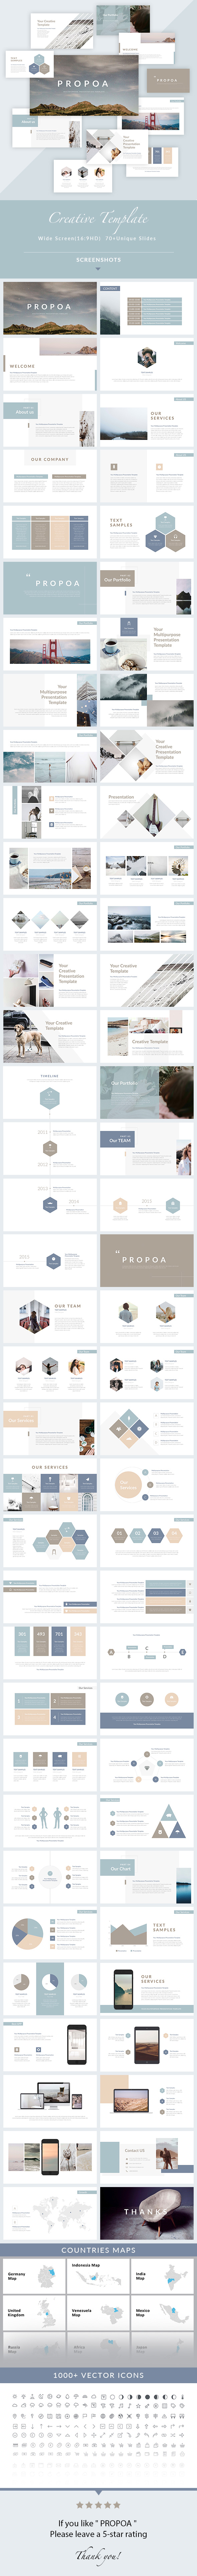 GraphicRiver Propoa Keynote Presentation Template 21101607